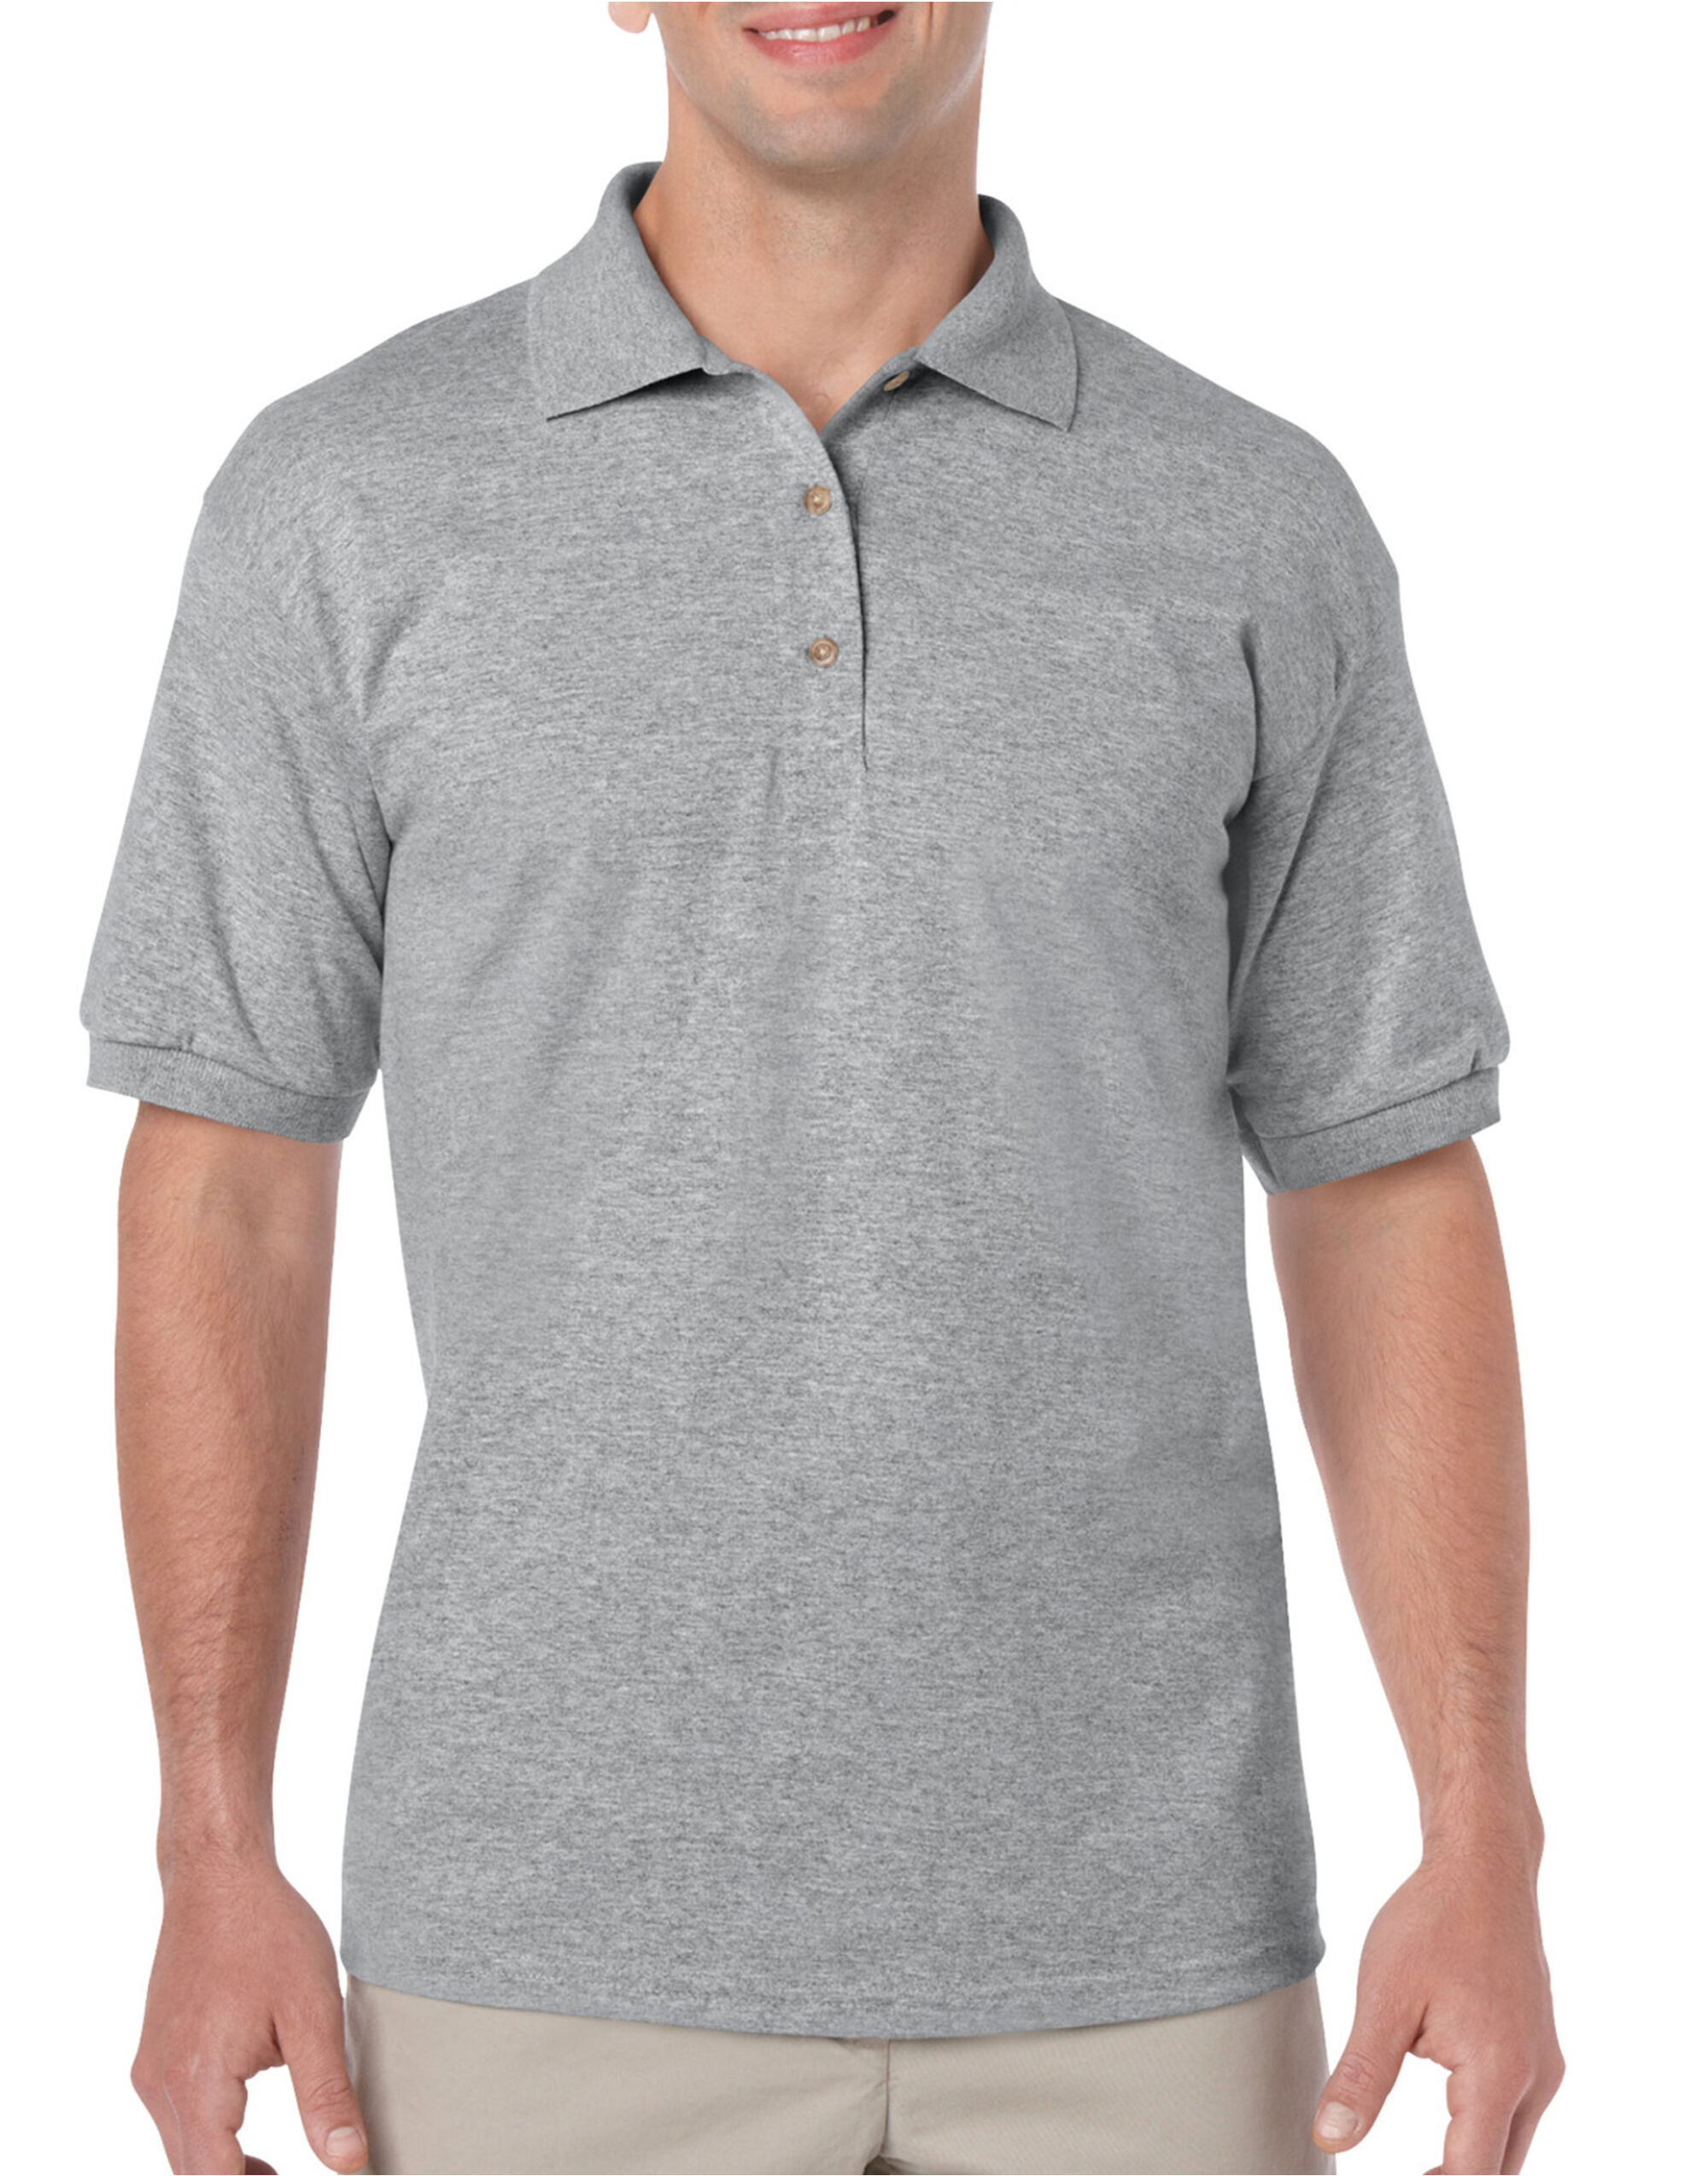 Adult DryBlend Jersey Polo